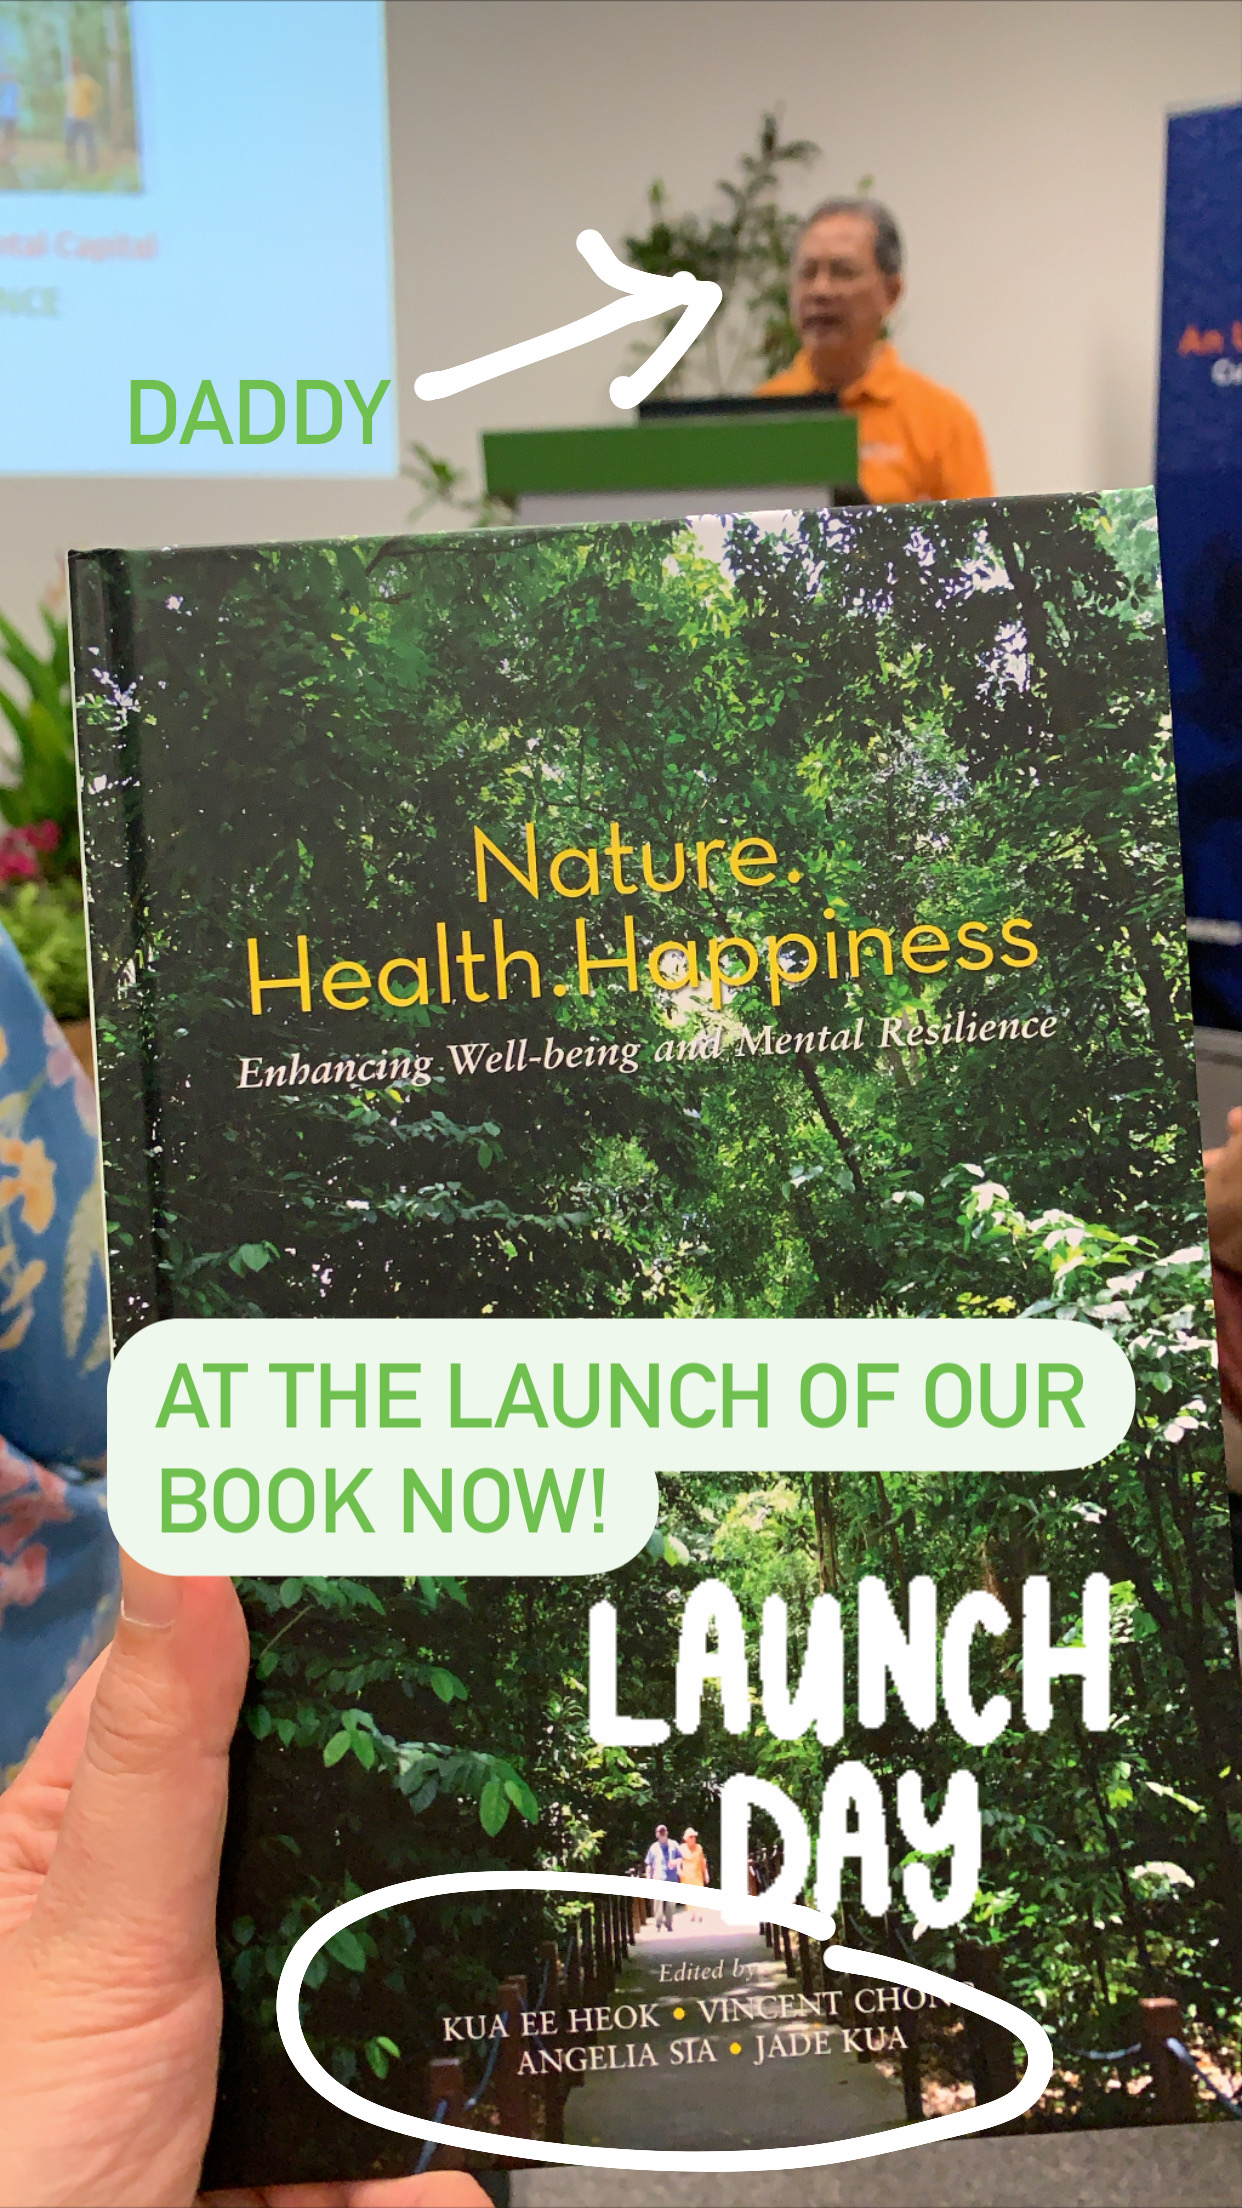 Book launch on therapeutic forest